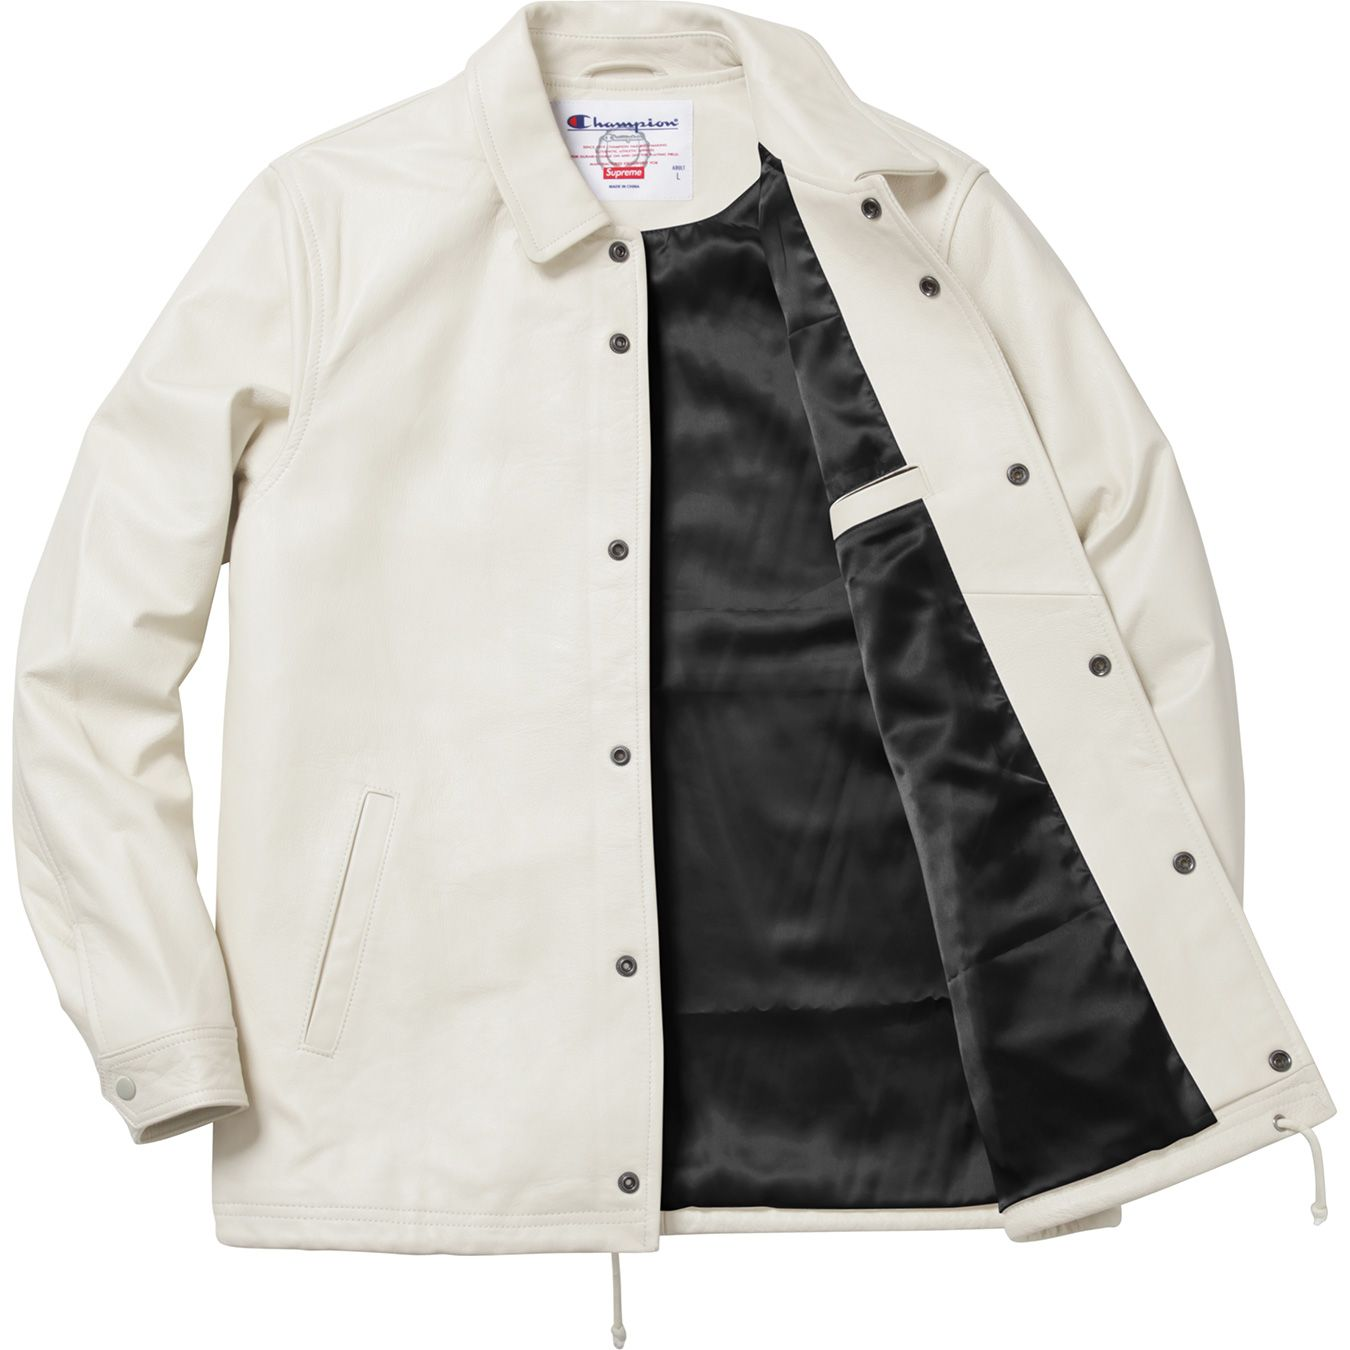 Supreme/Champion White Leather Coaches Jacket